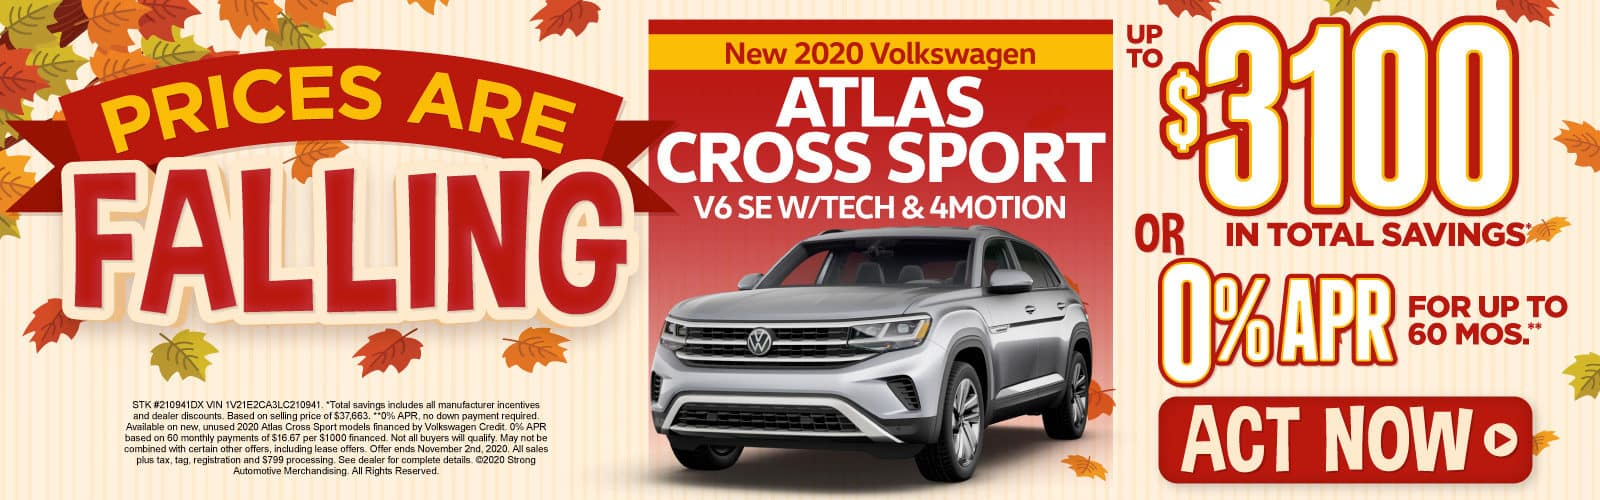 New 2020 Atlas CrossSport - Up to $3100 in total savings - Act Now